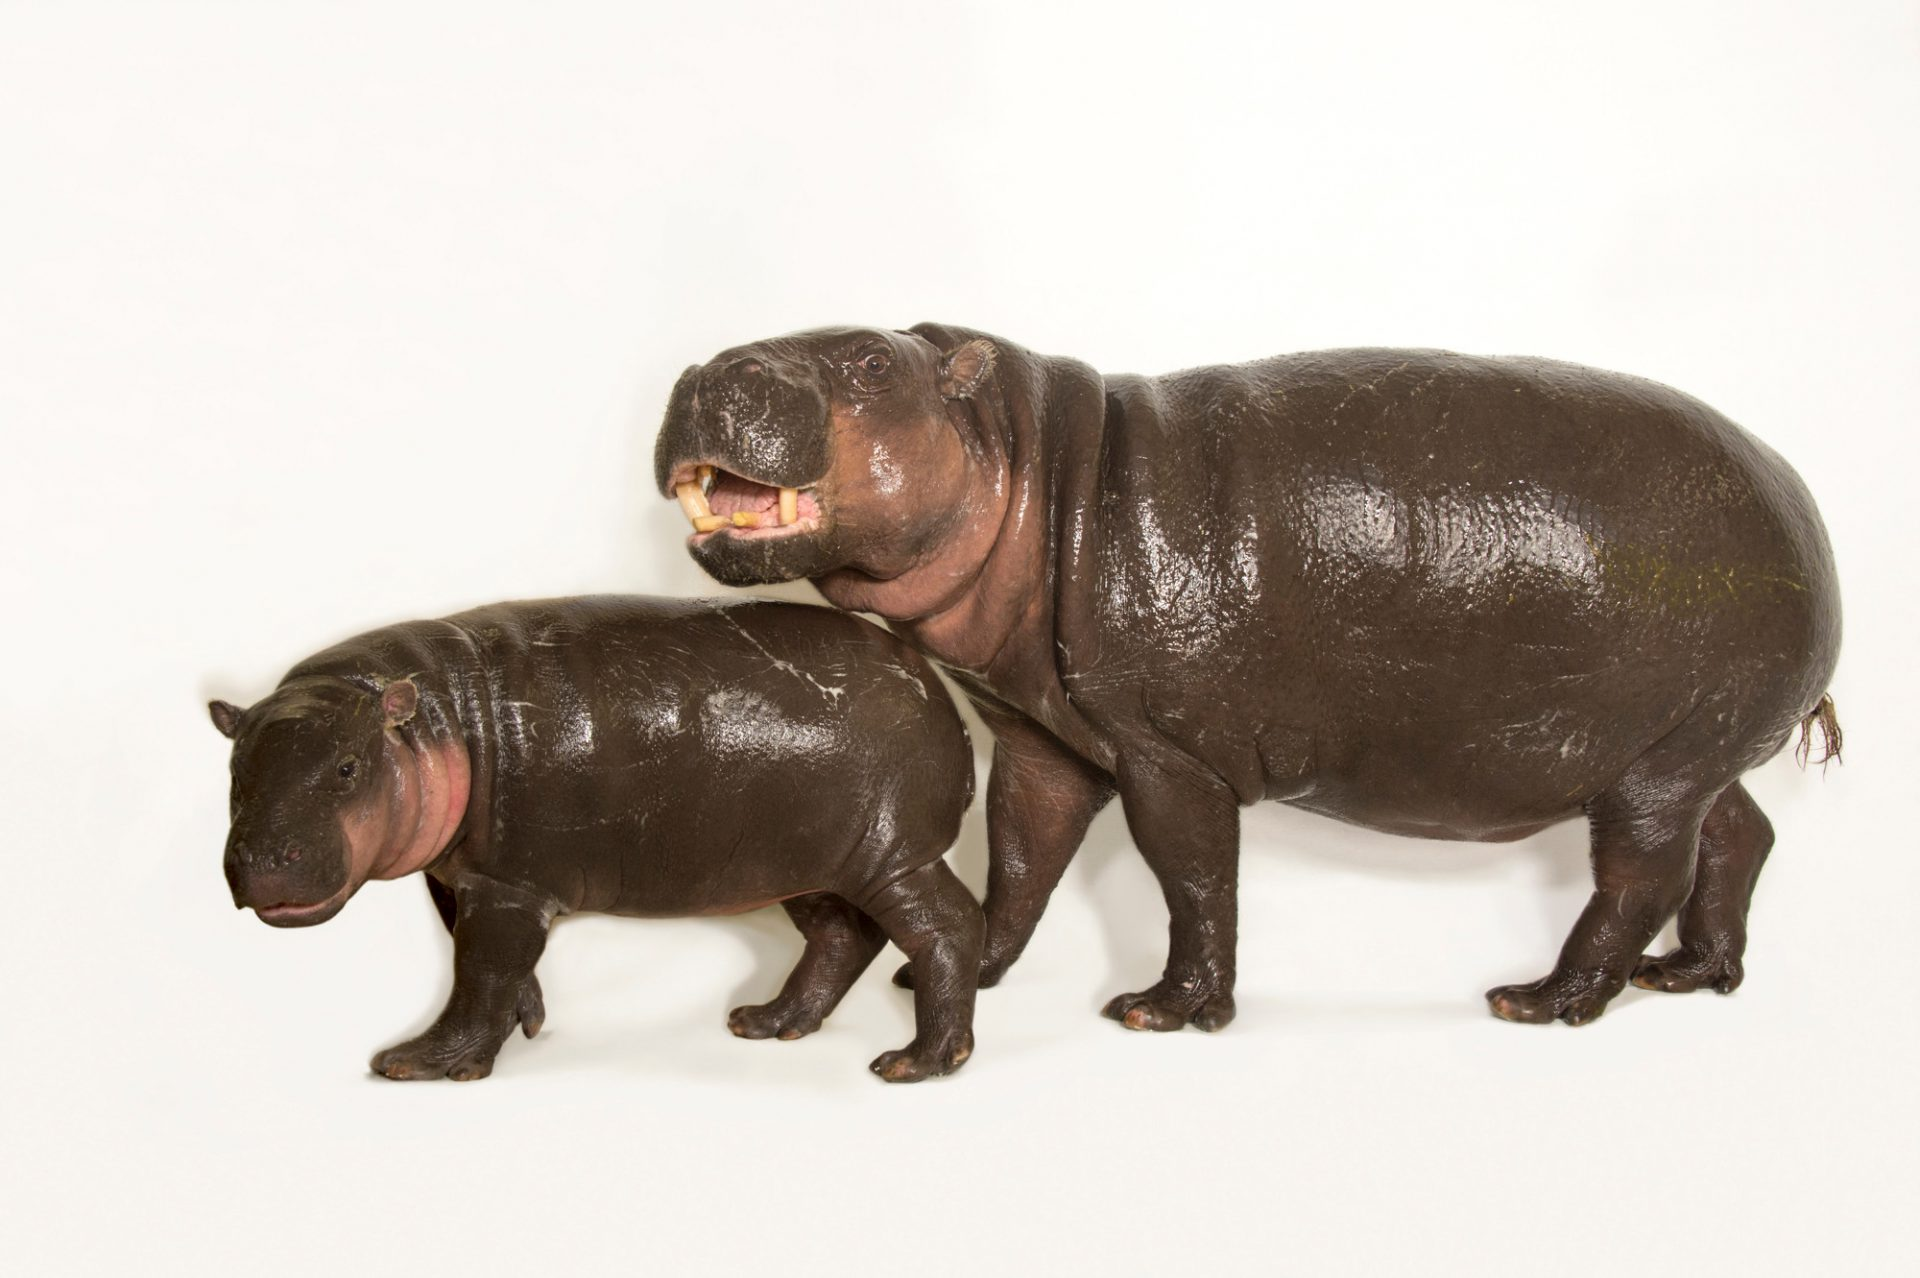 Picture of Ralph, an endangered 6 month old baby Pygmy hippopotamus and his mother, Chomel (Choeropsis liberiensis) at Omaha Henry Doorly Zoo.